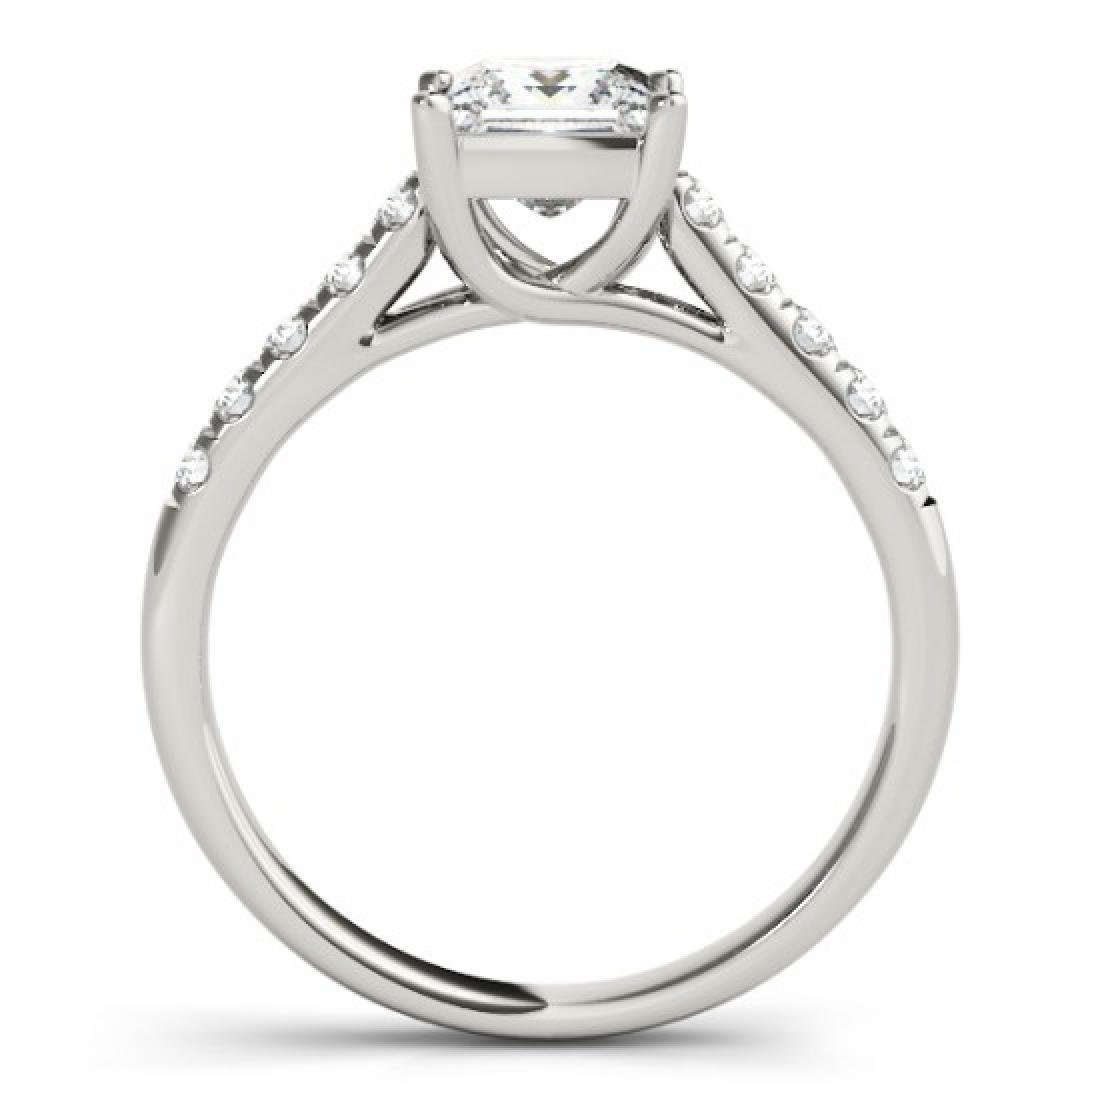 1.3 CTW Certified VS/SI Princess Diamond Ring 14K White - 2